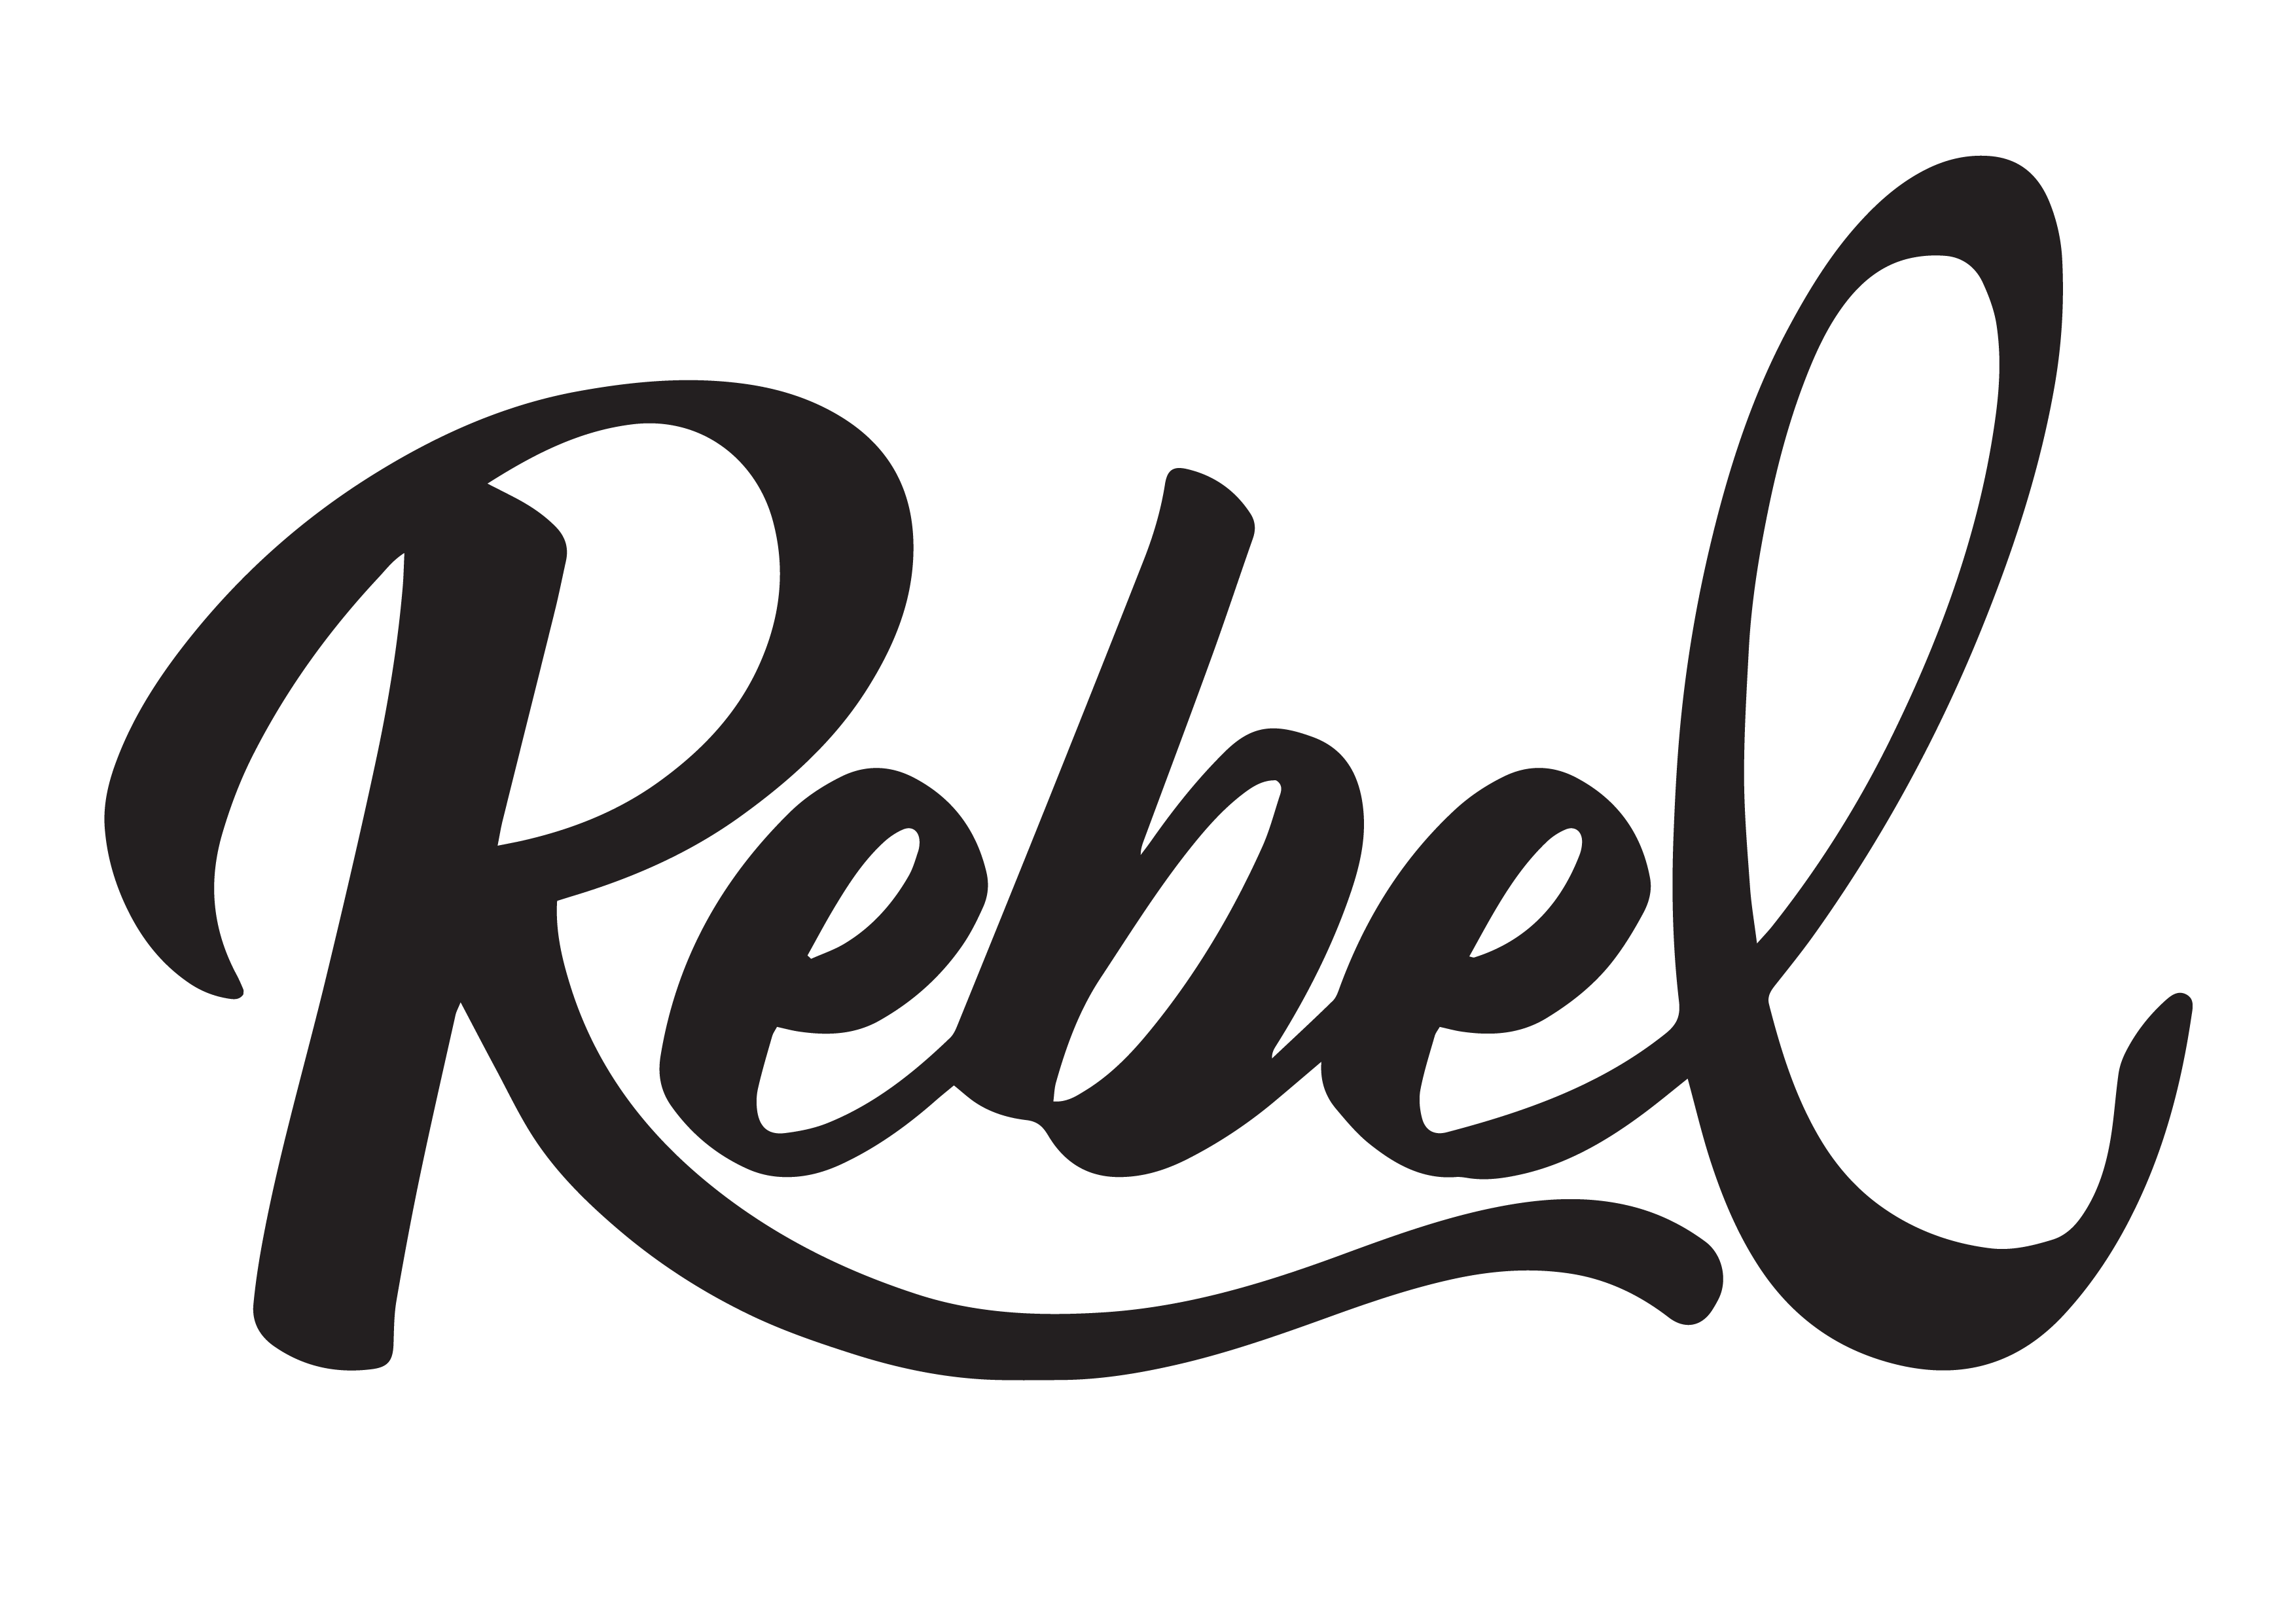 Rebel Ice Cream logo